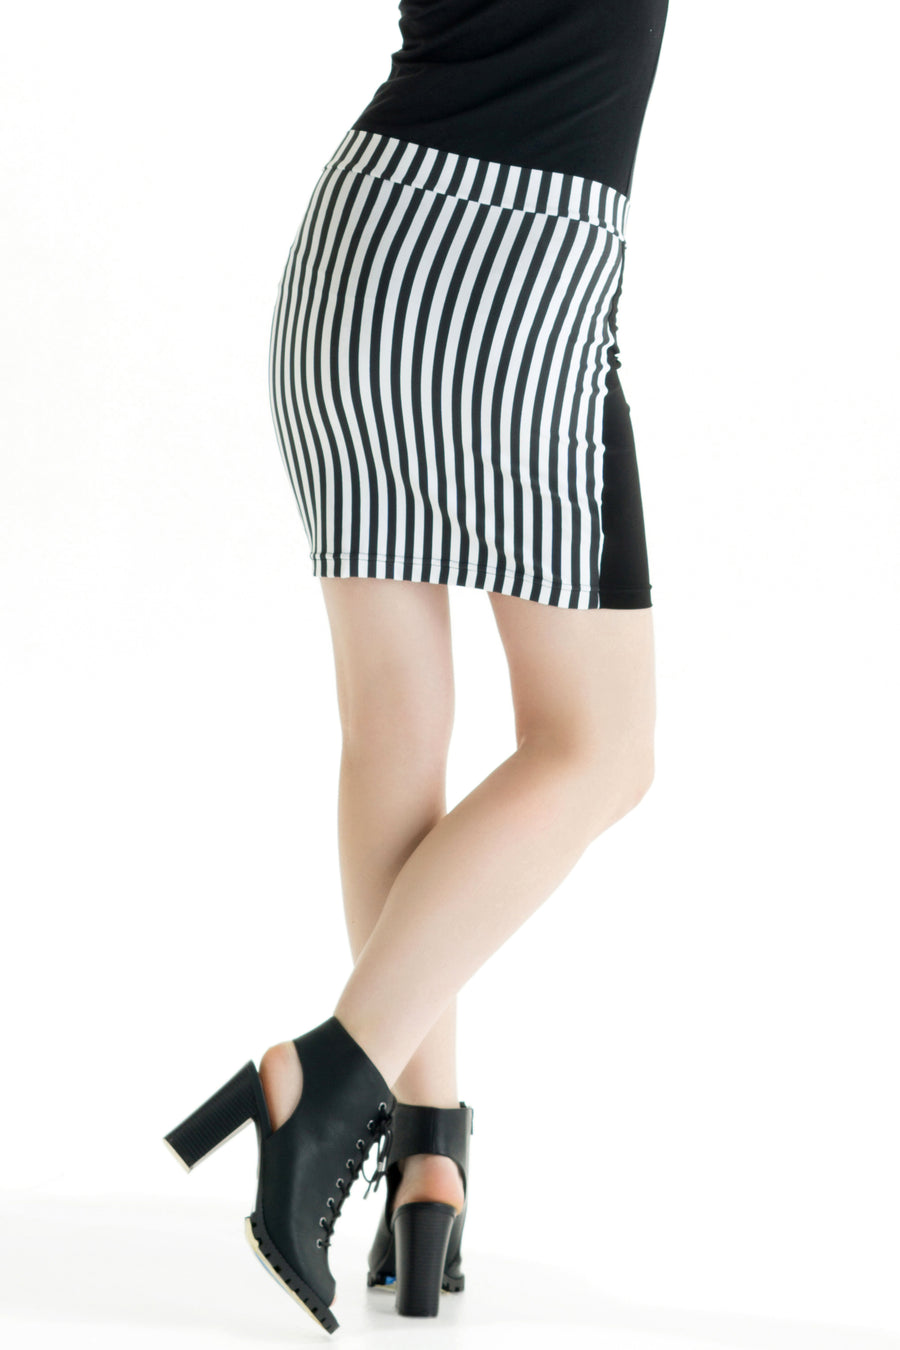 Dark Circus Convertible Bandeau Skirt/Top